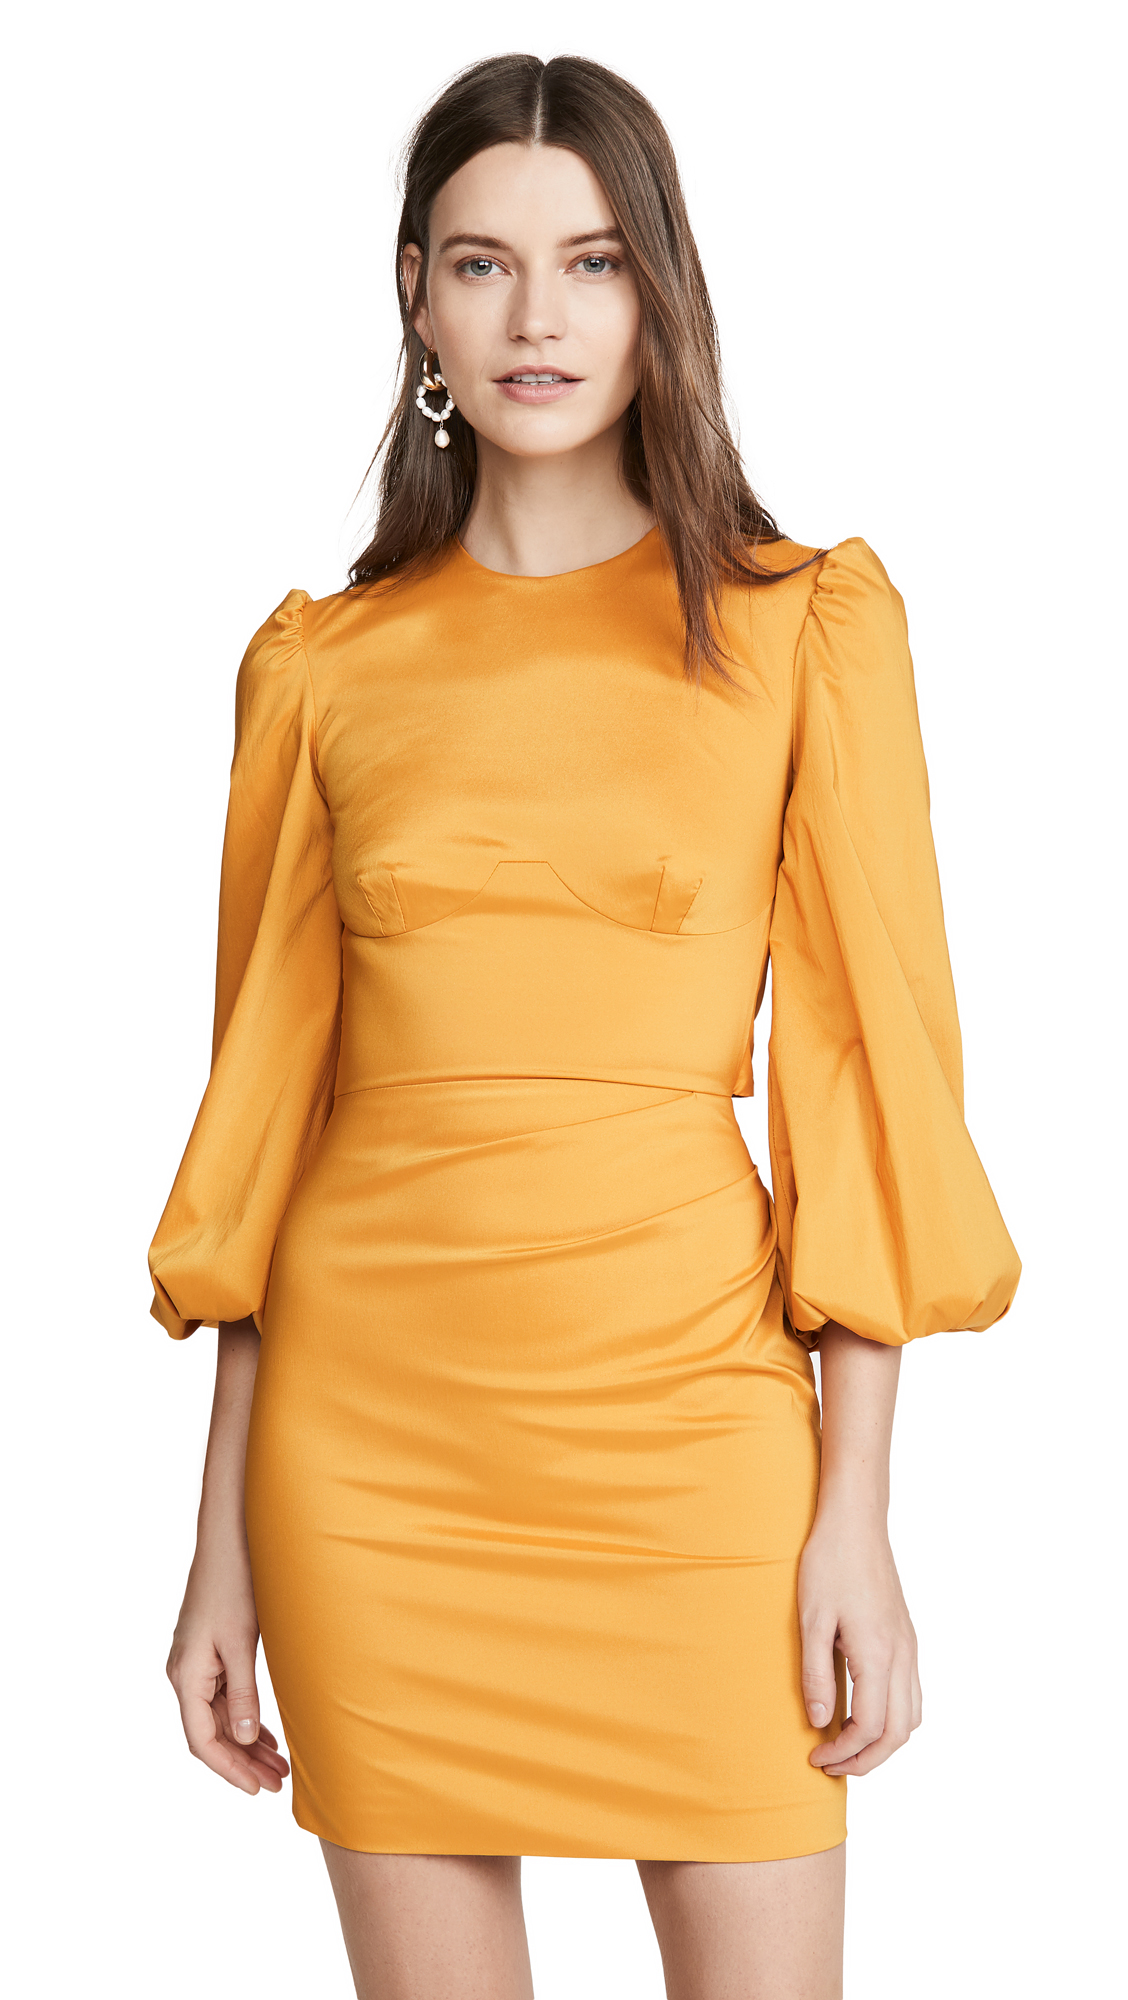 Manning Cartell Australia Victory Lap Mini Dress - 30% Off Sale